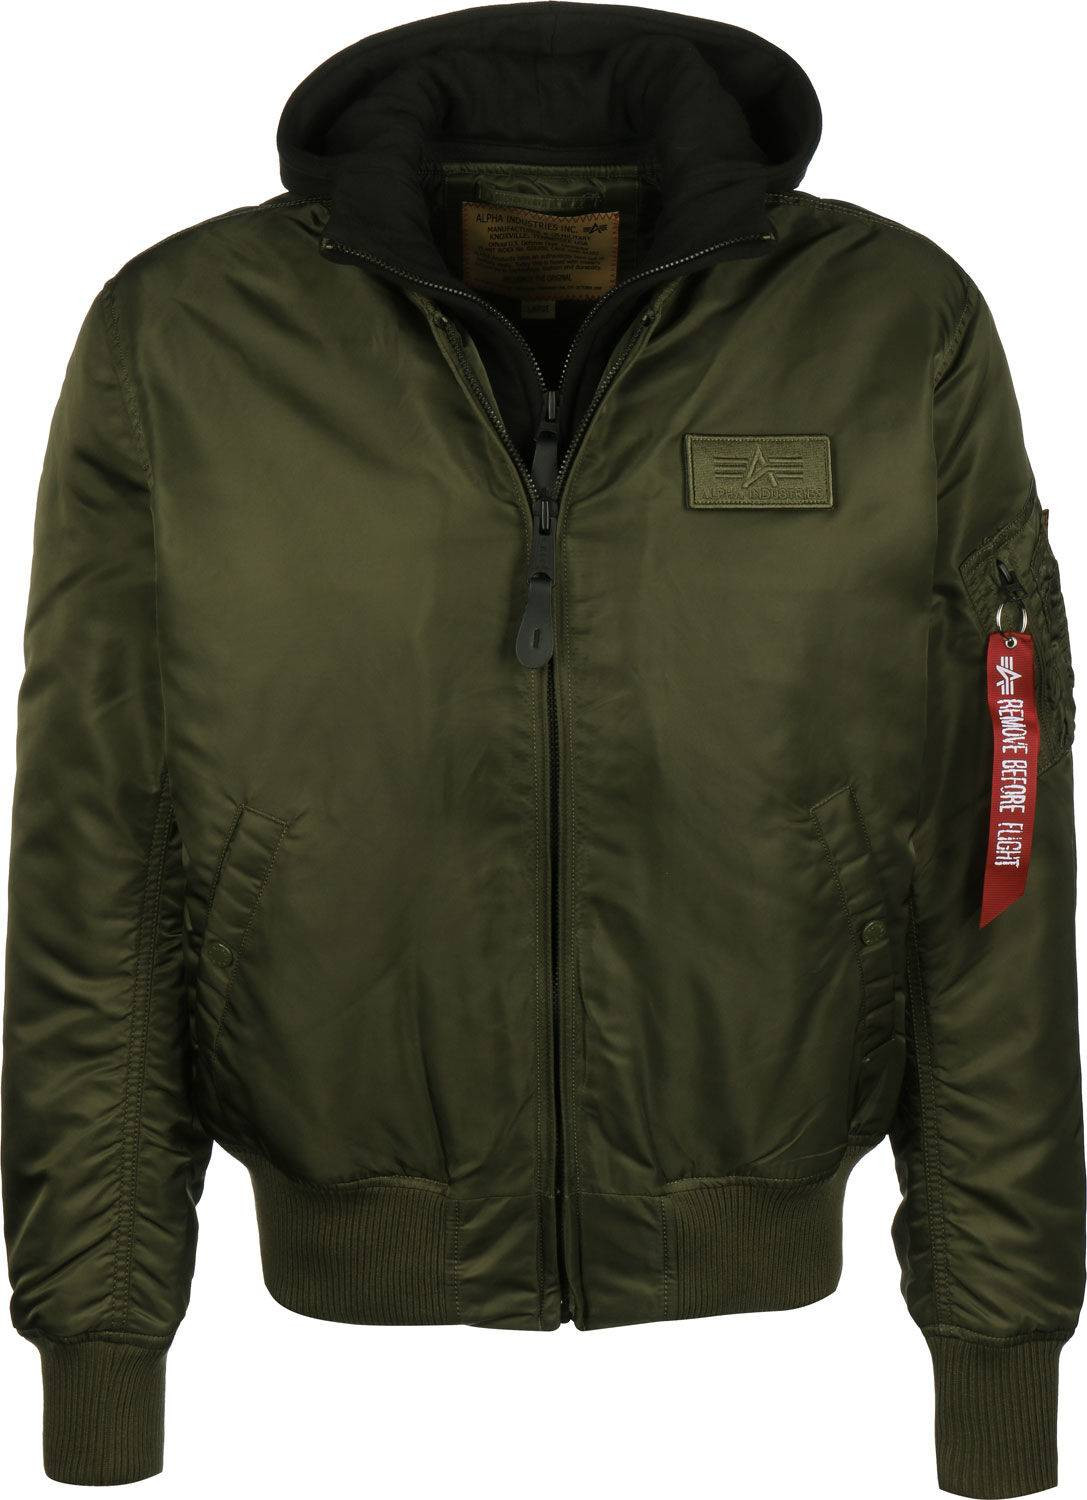 Alpha Industries MA-1 D-Tec, taille S, homme, olive